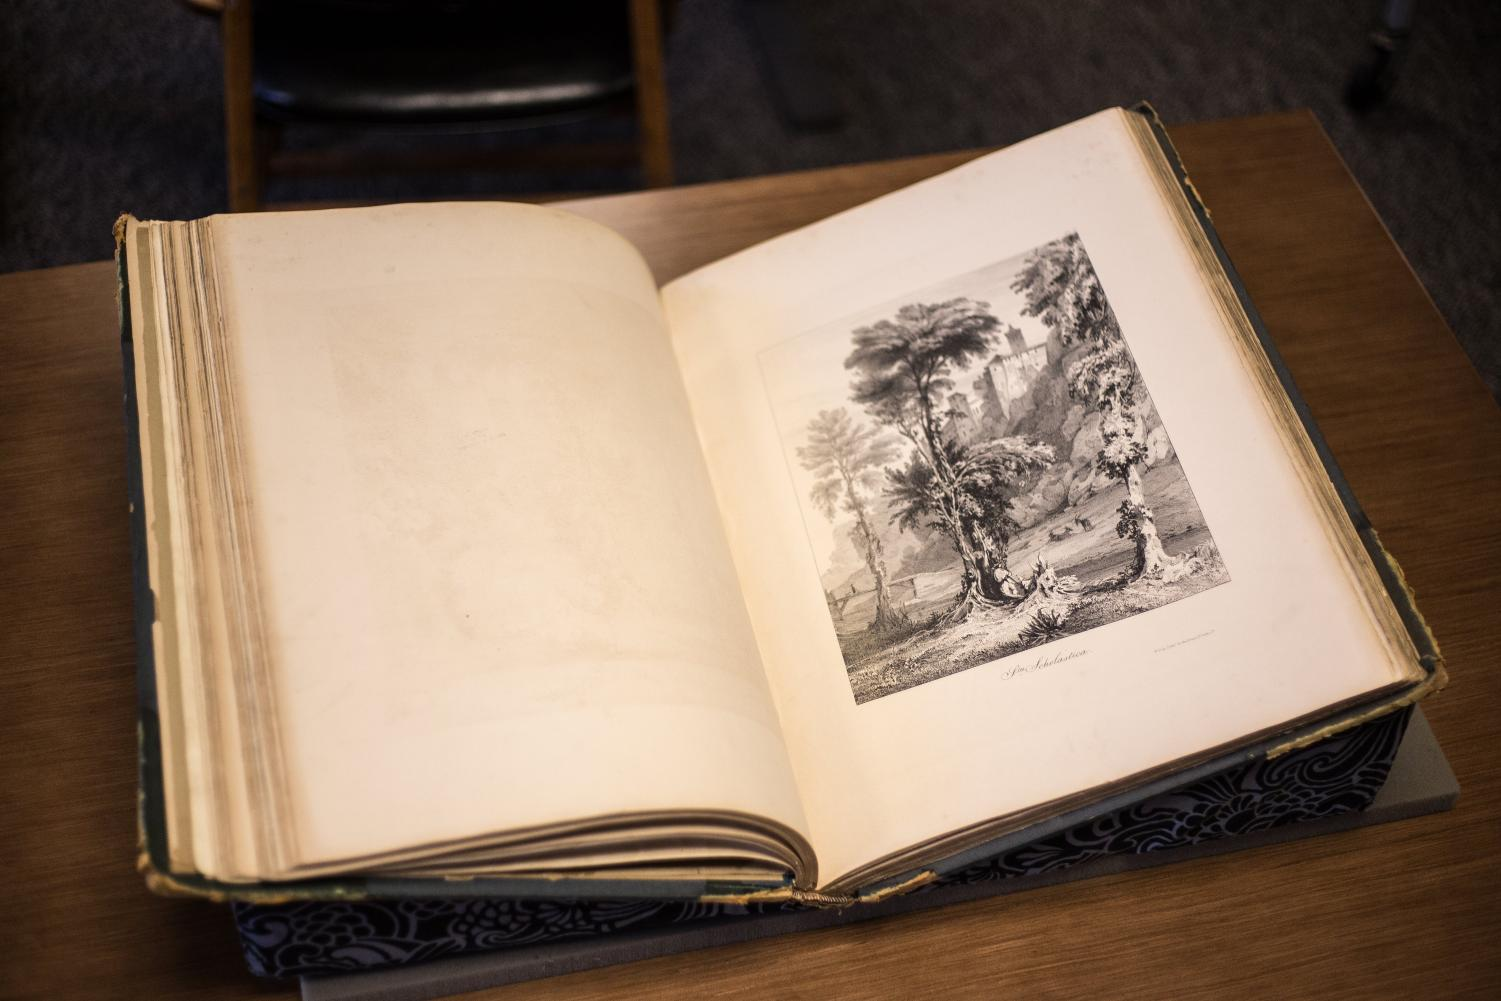 Sketches in Italy, a collection of picturesque sketches, at the Rare Book & Manuscript Library on July 9, 2018.